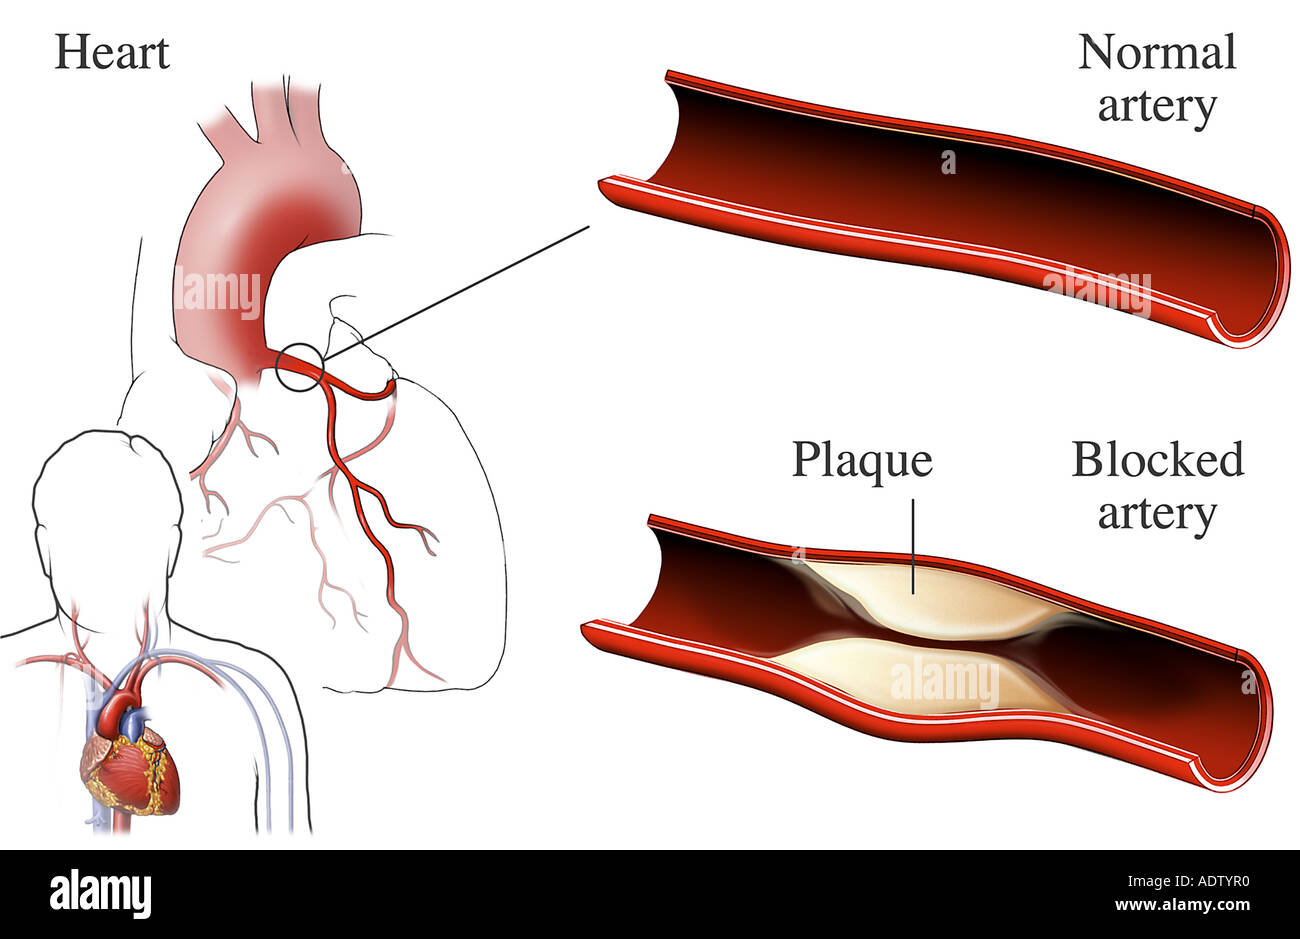 Normal vs blocked artery stock photo 7710895 alamy blocked artery ccuart Image collections